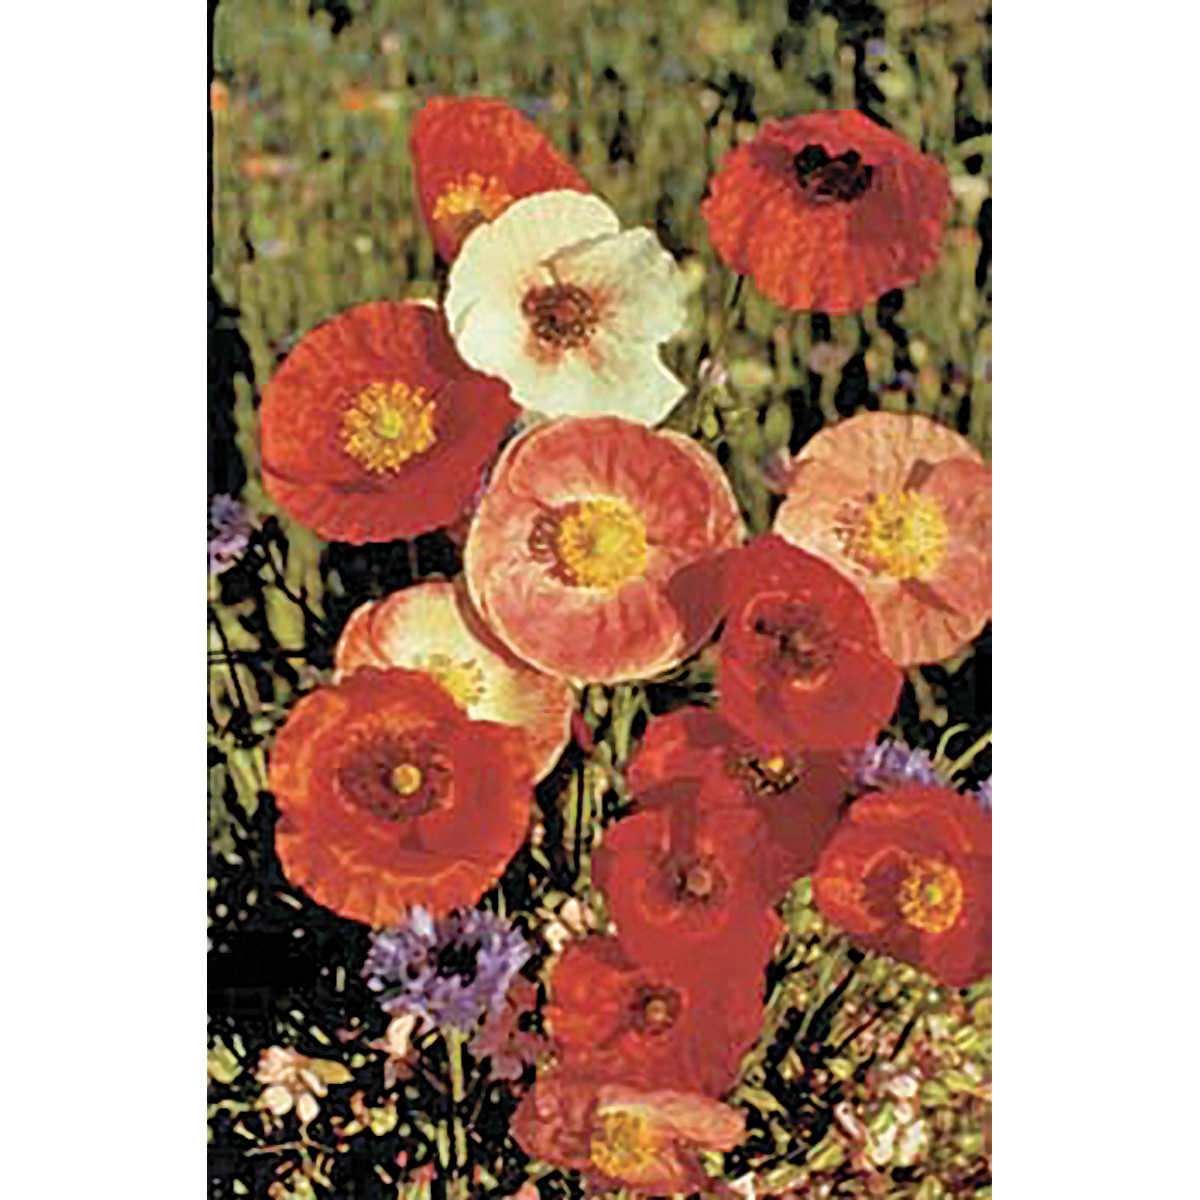 Shirley double mix corn poppy seeds ne seed shirley double mix corn poppy seeds mightylinksfo